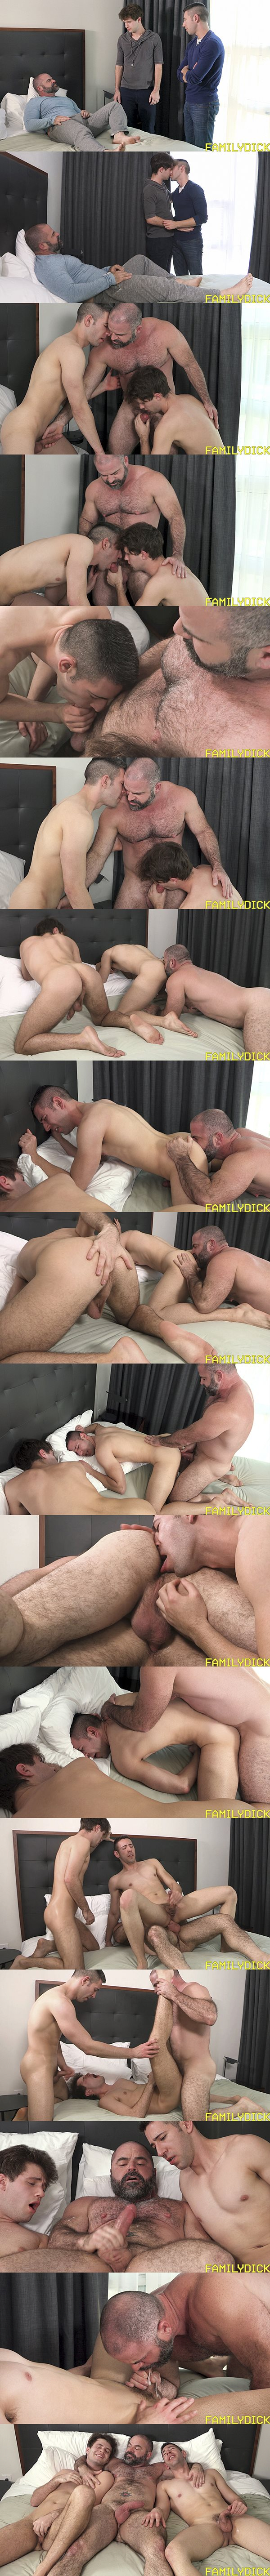 Bishop Angus barebacks Elder Gardner and his brother in Love at Home Chapter 1 Brotherly Love at Familydick 02